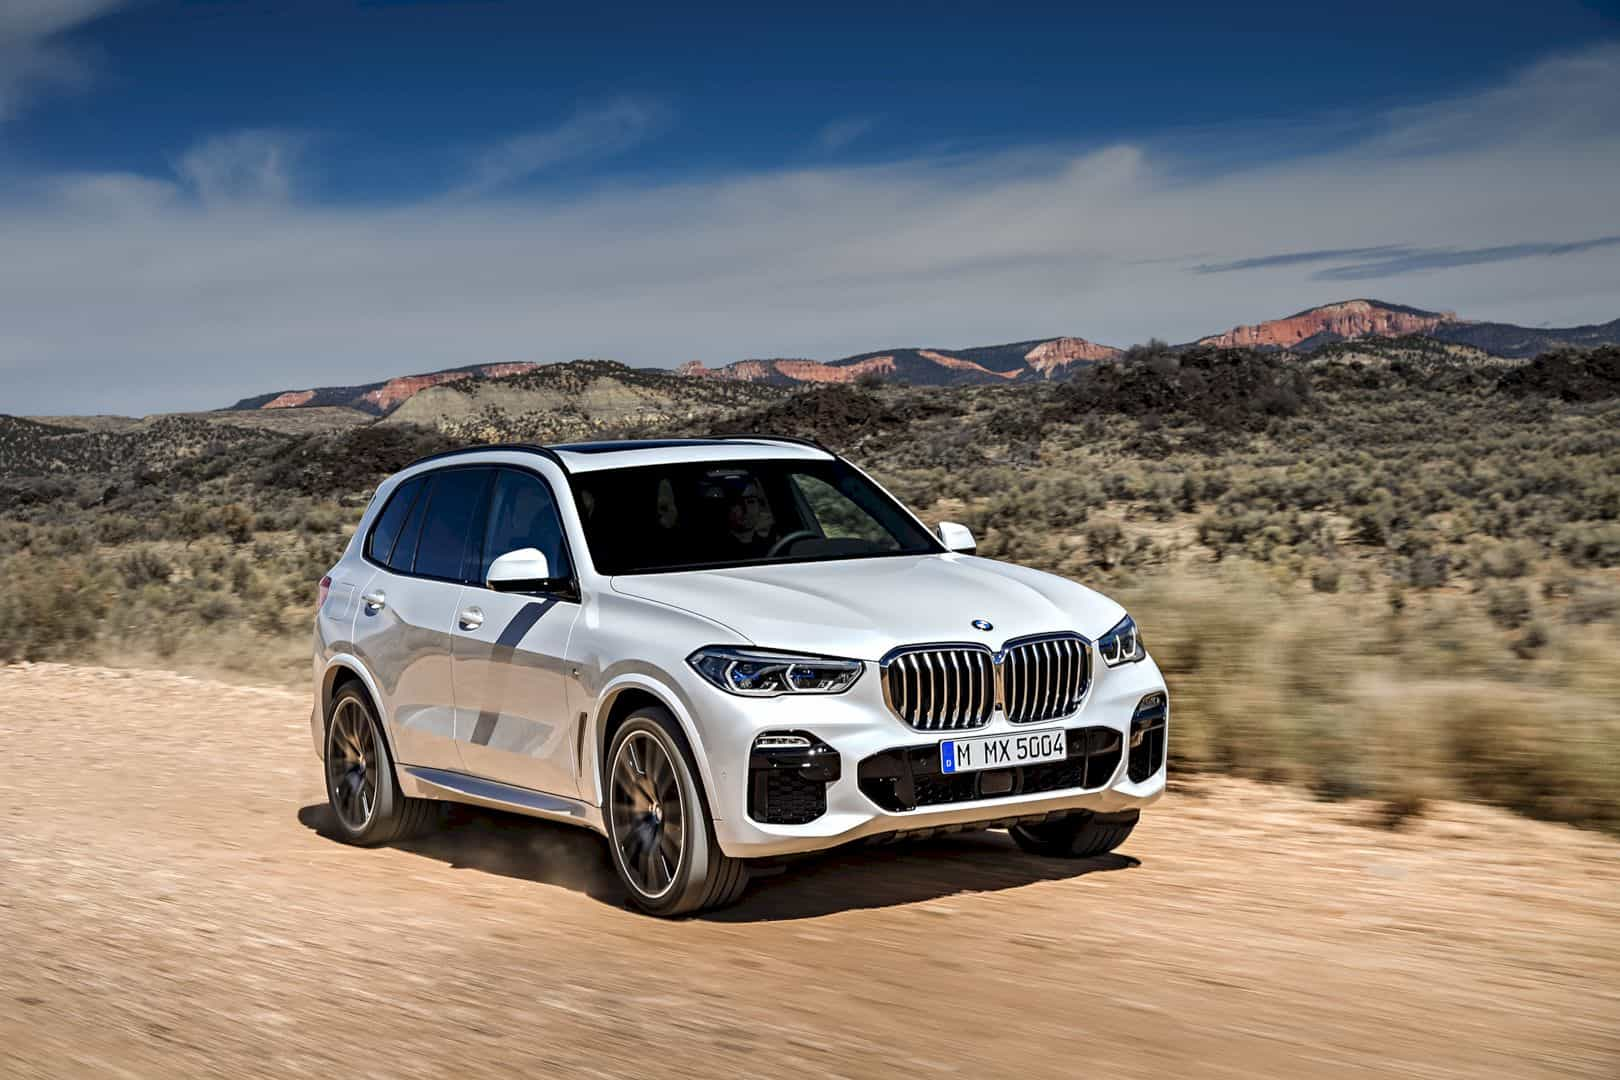 Maserati Alfieri Price >> The All-New 2019 BMW X5 – The Leader of The Pack is Here! | Design Listicle